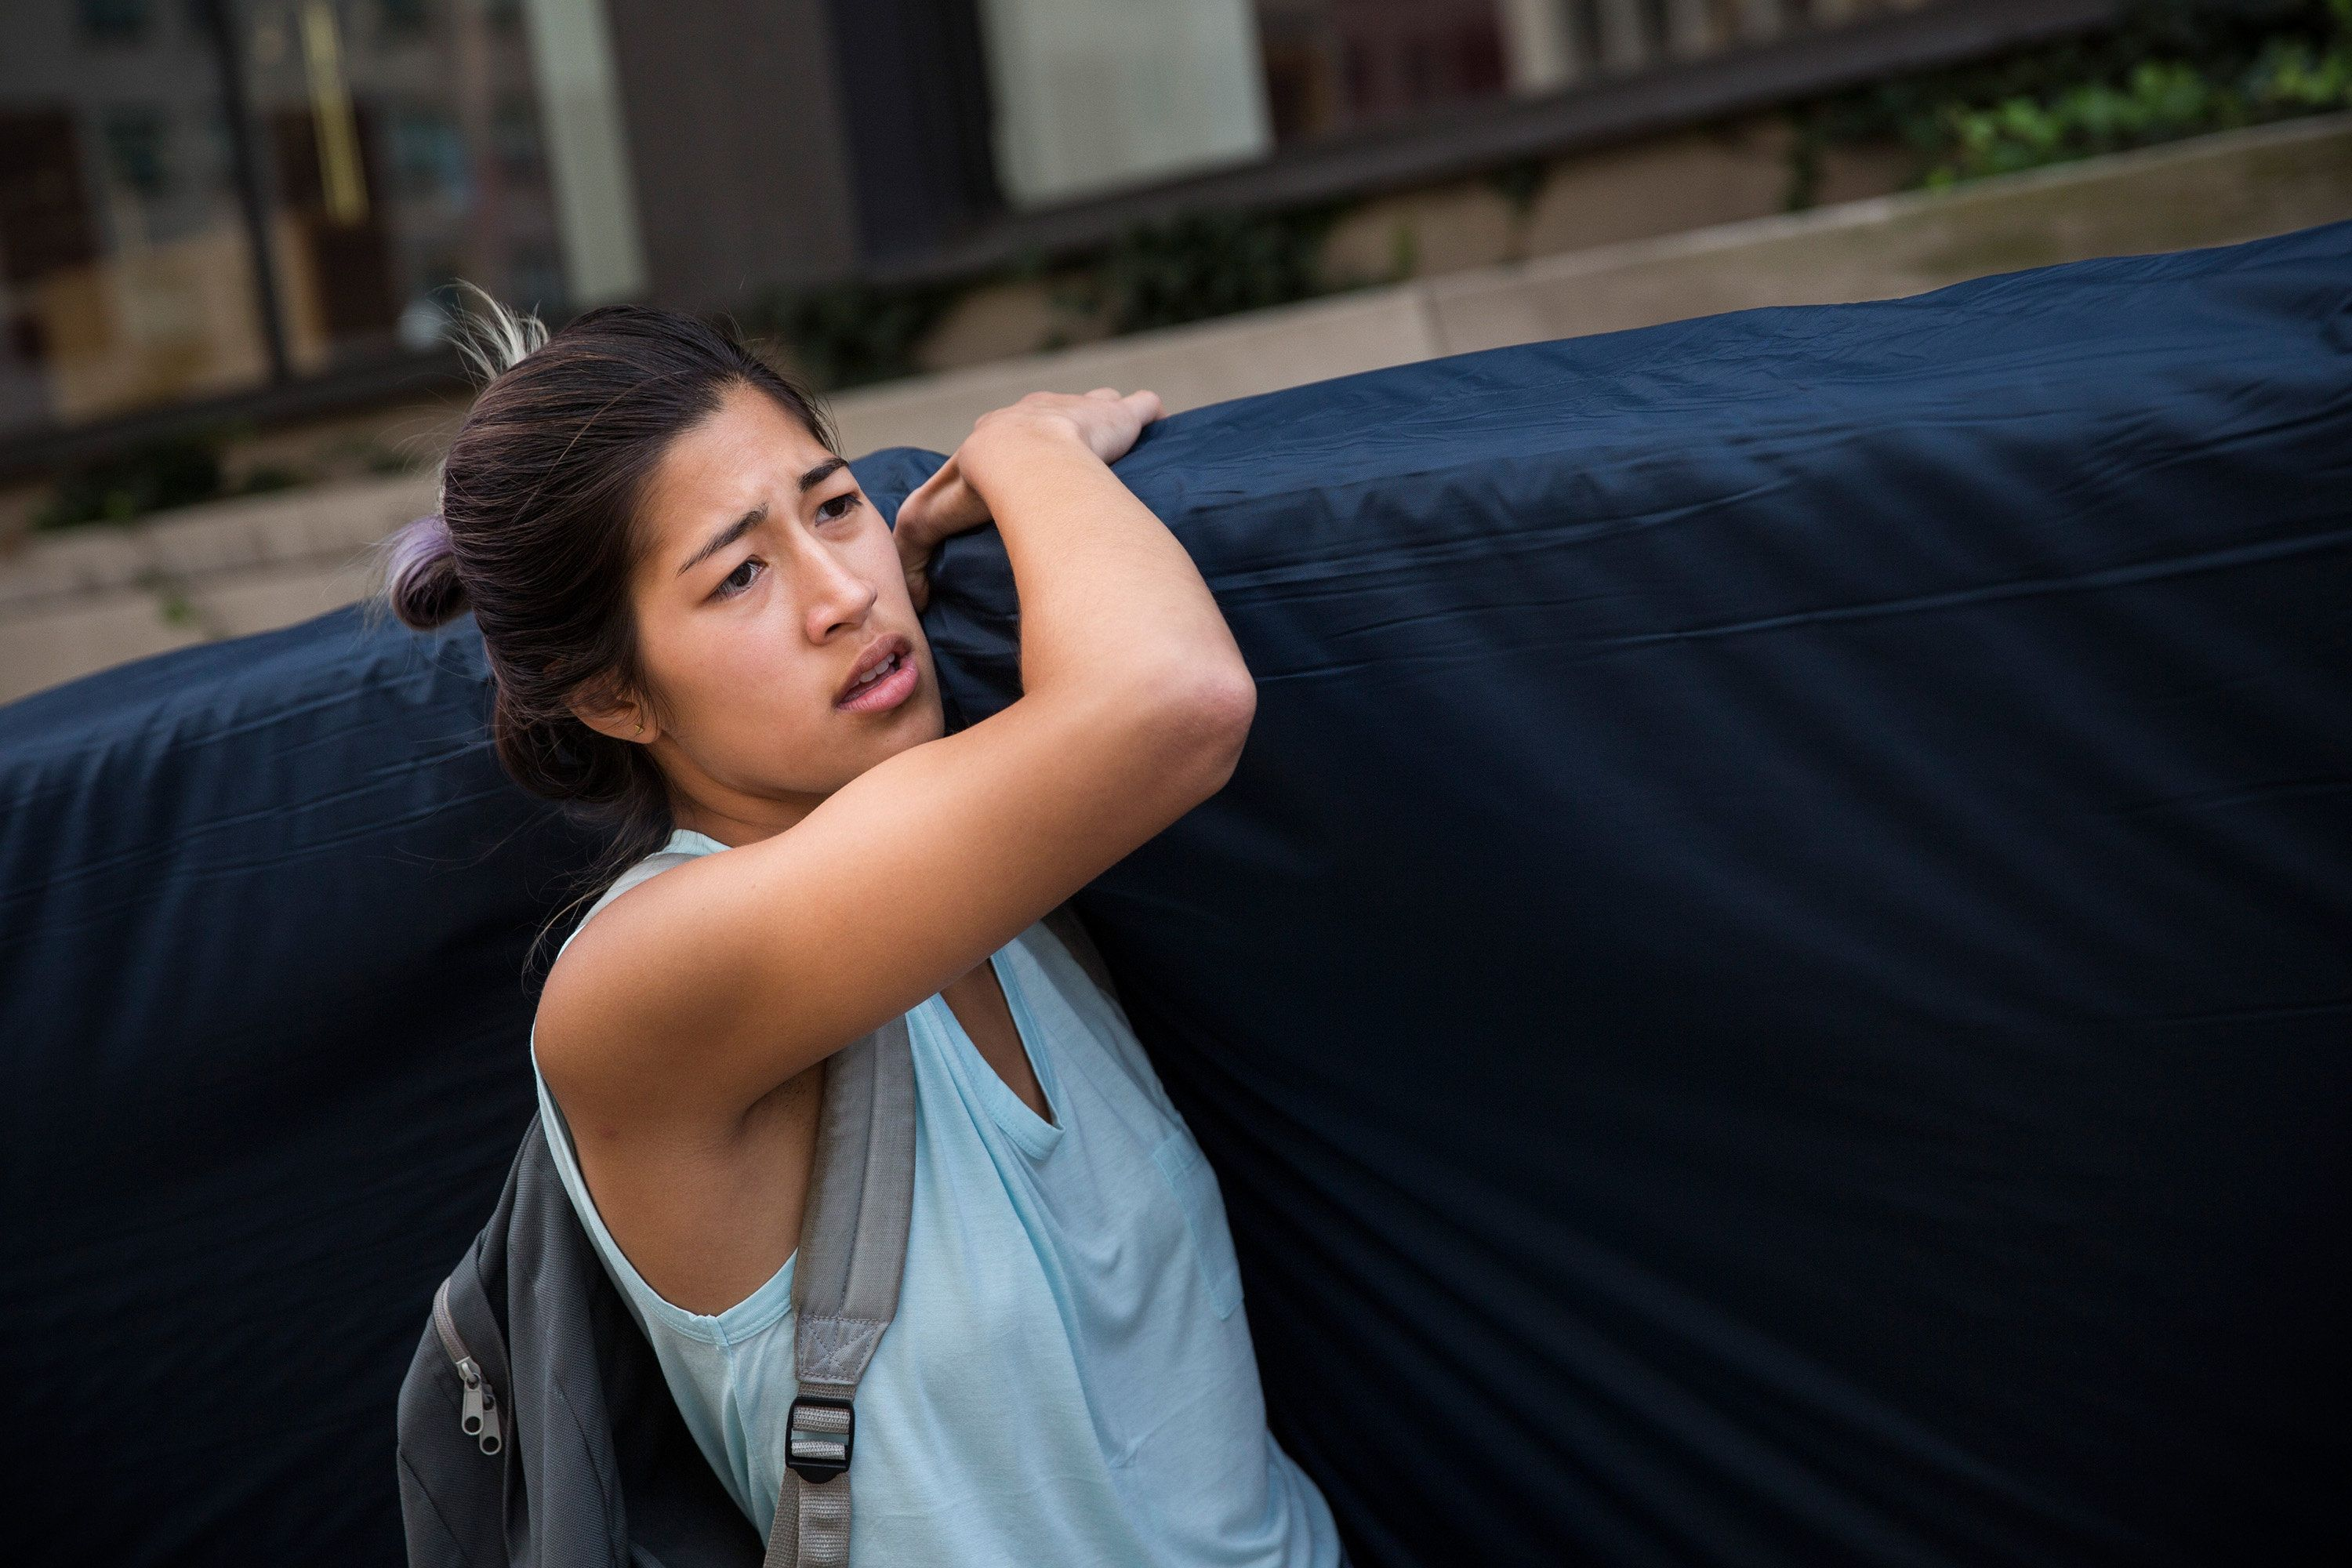 Sulkowicz carrying her mattress on September 5, during her senior year at Columbia.